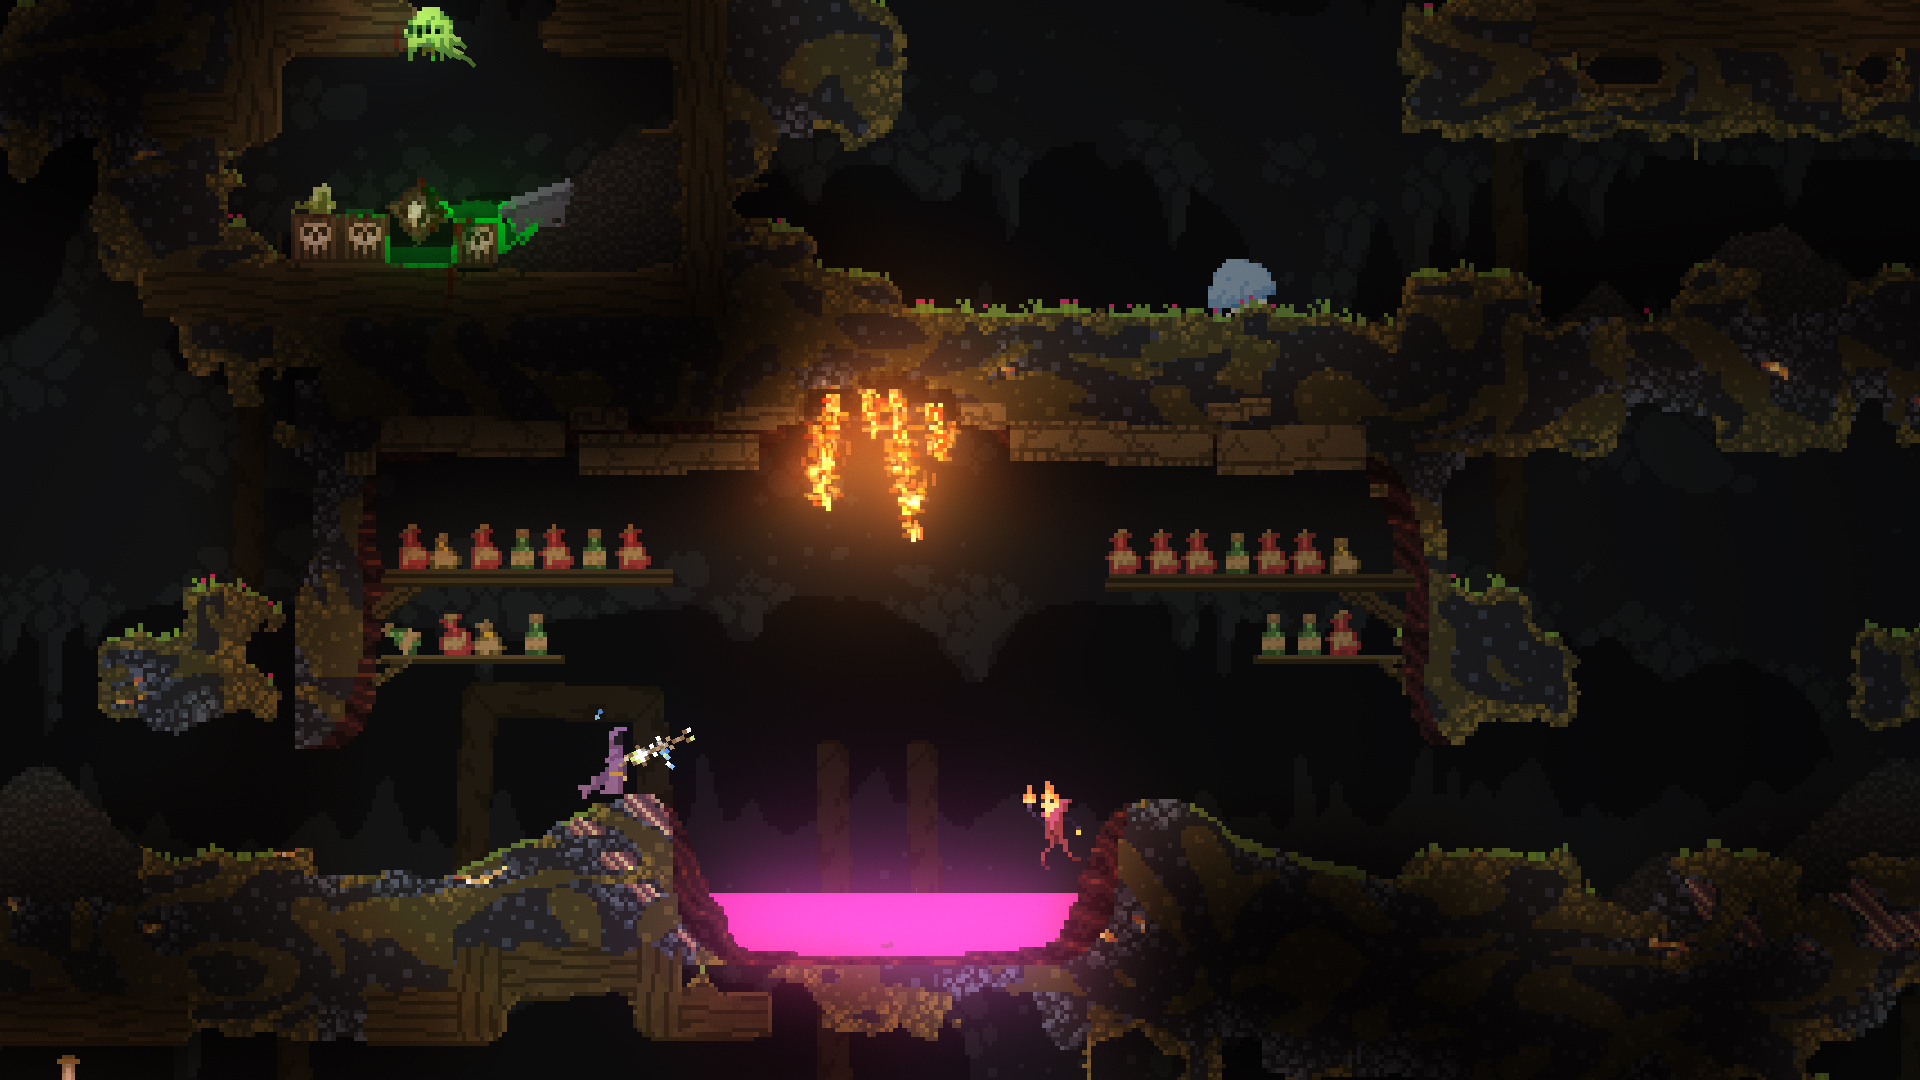 Screenshot from Noita showing some of the fire effects in the game